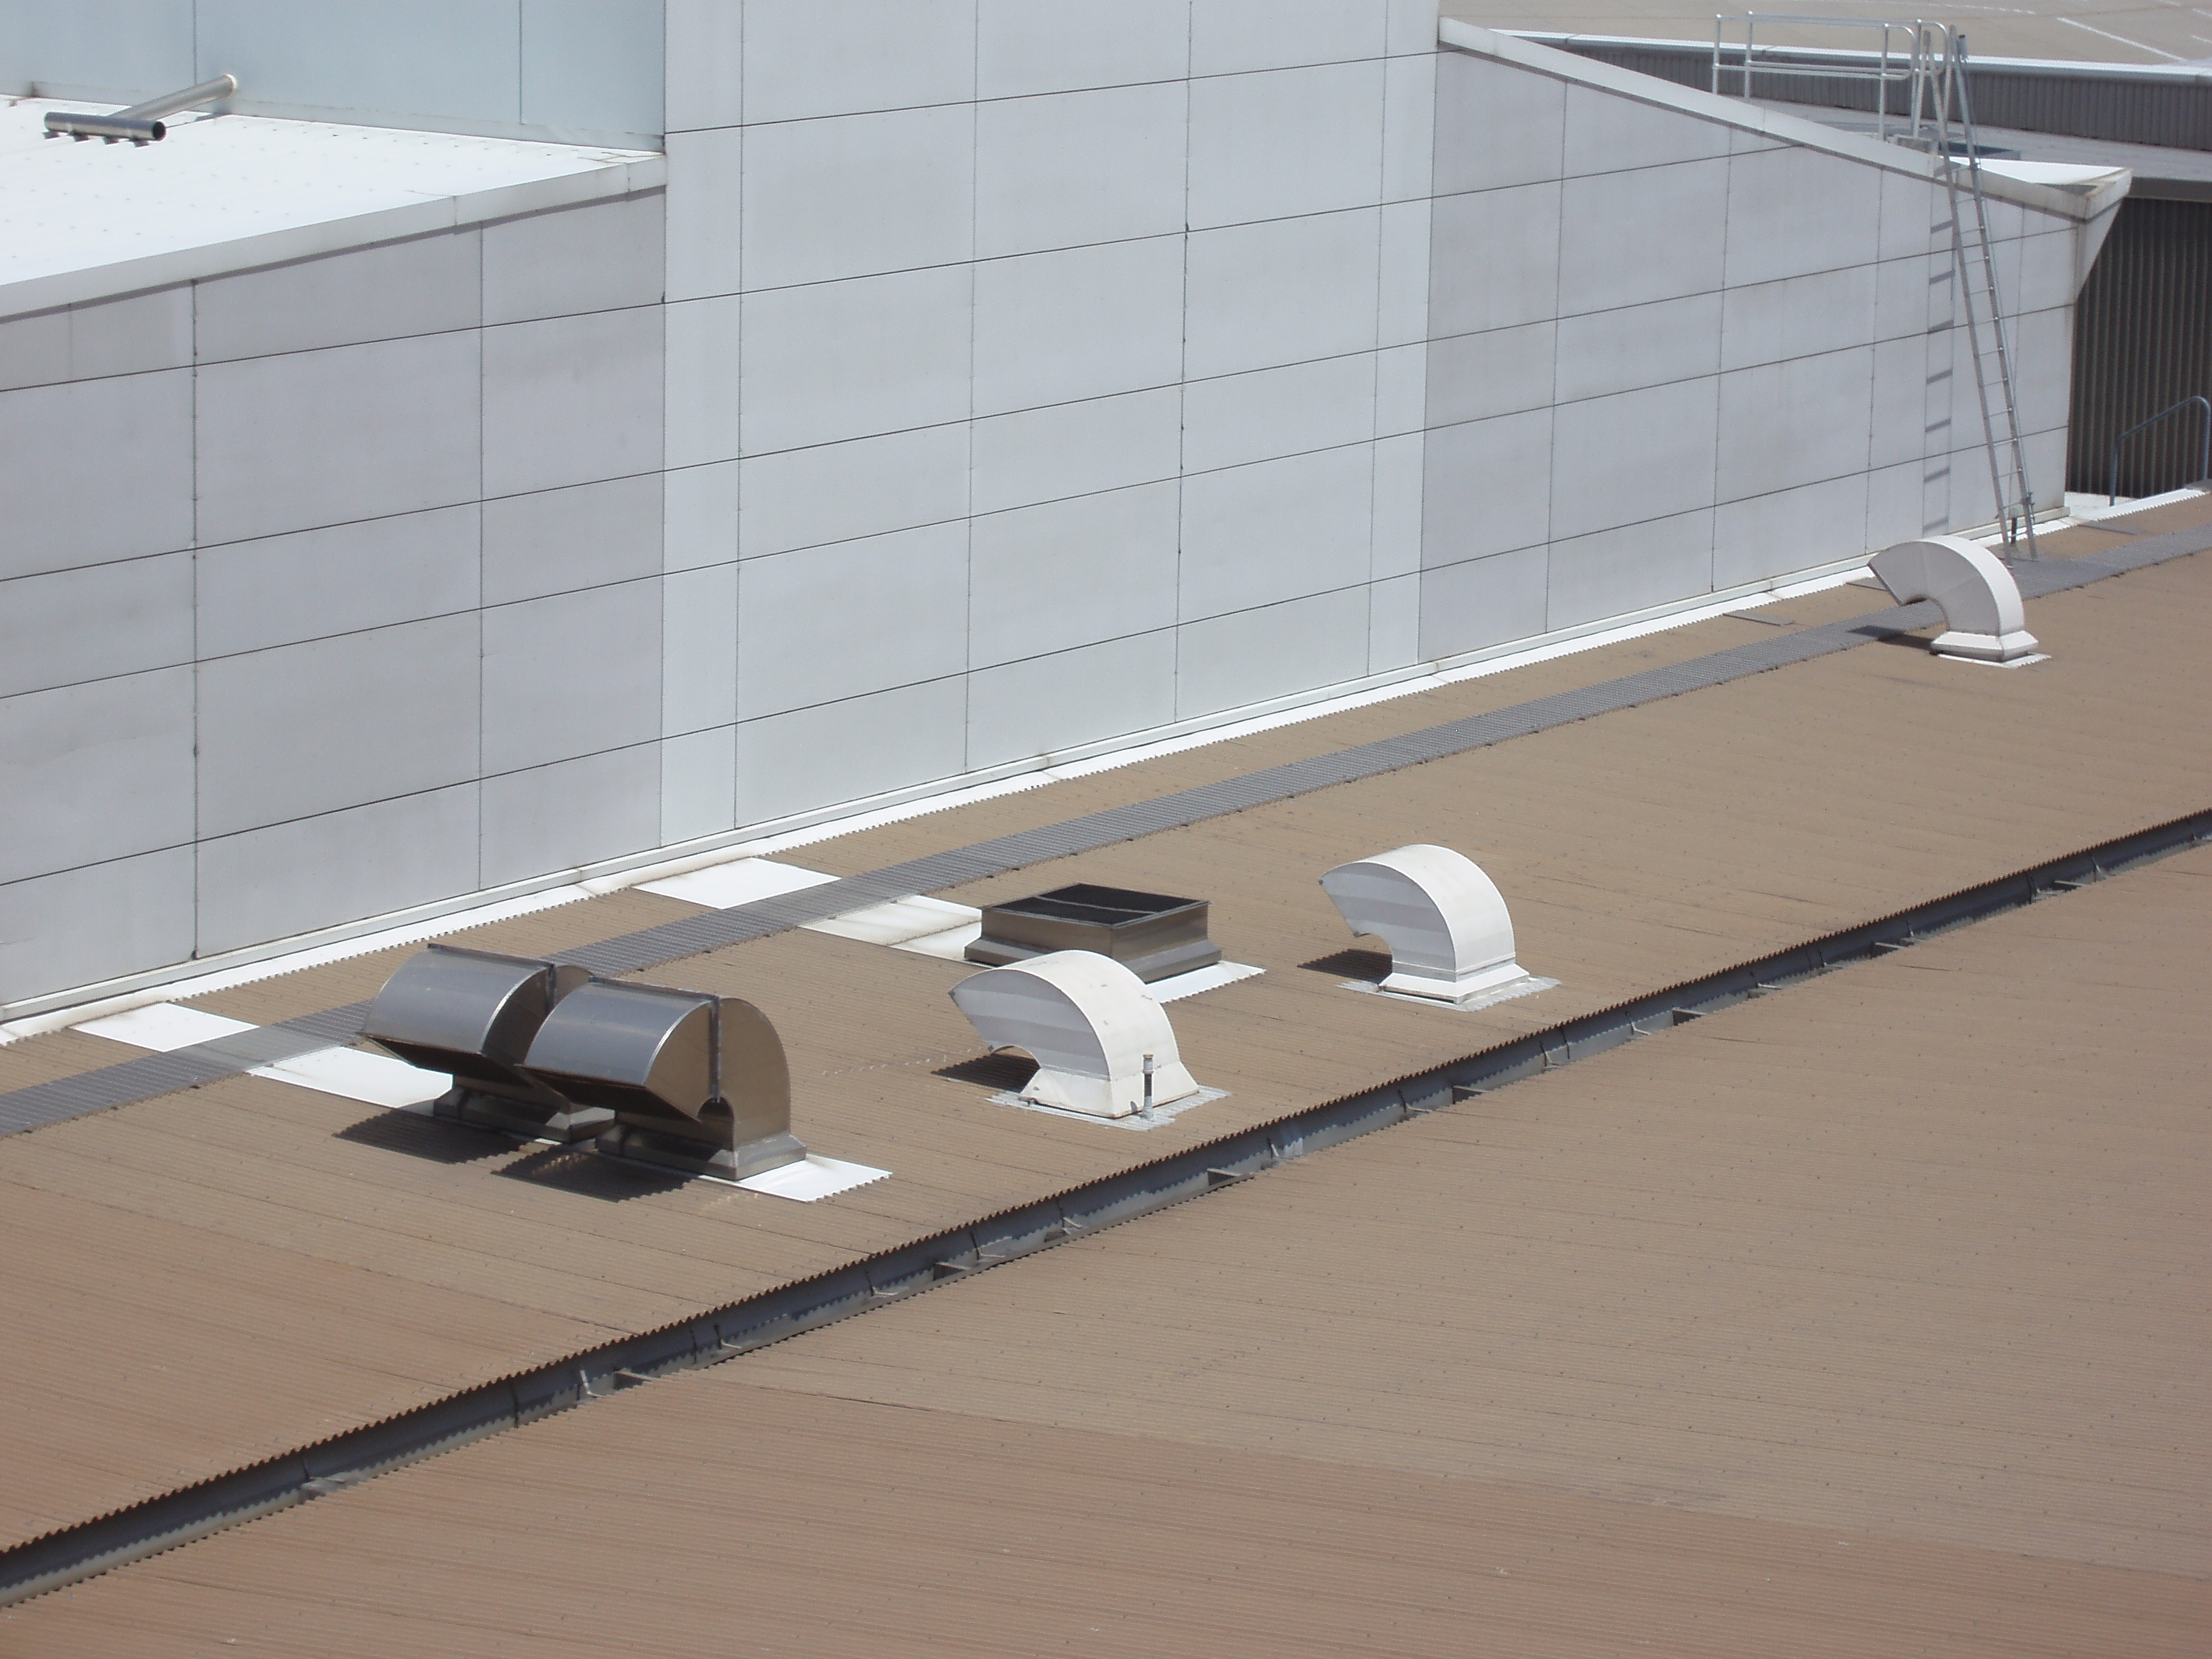 Download image Industrial Roof Vents PC Android iPhone and iPad  #6A5B4F